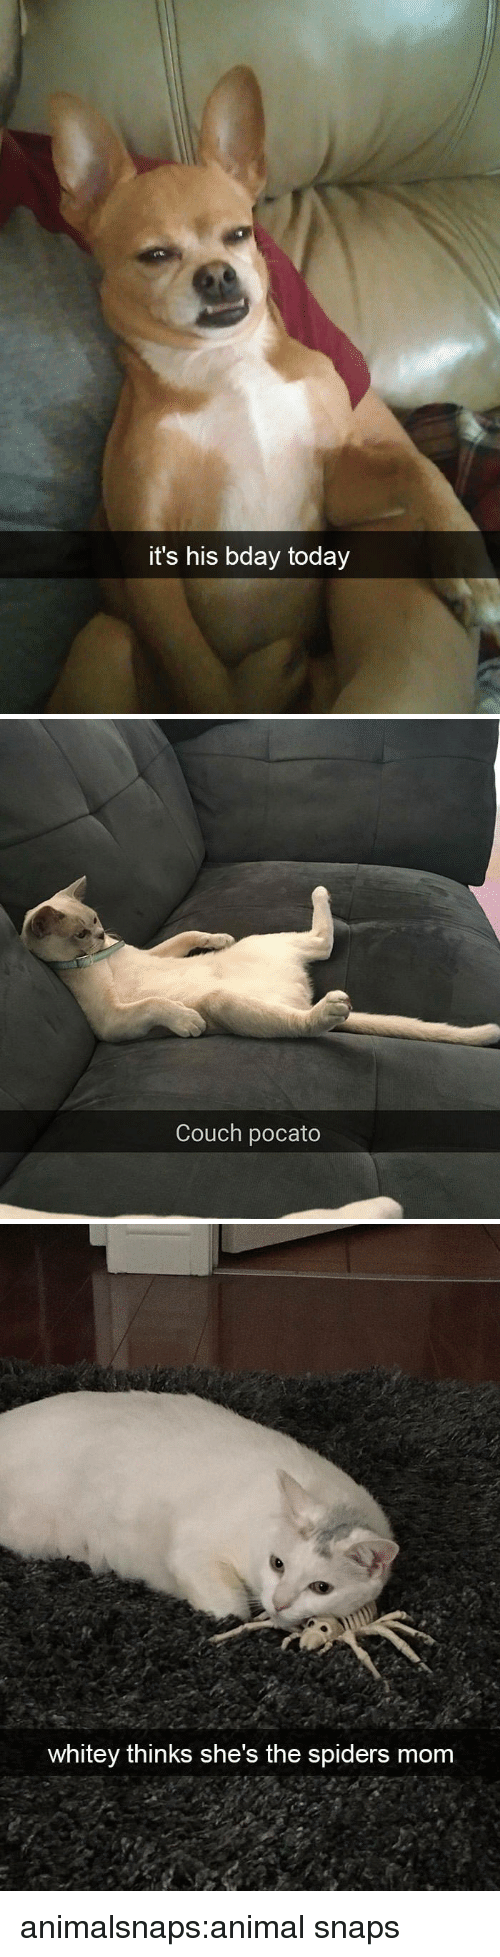 bday: it's his bday today   Couch pocato   whitey thinks she's the spiders mom animalsnaps:animal snaps